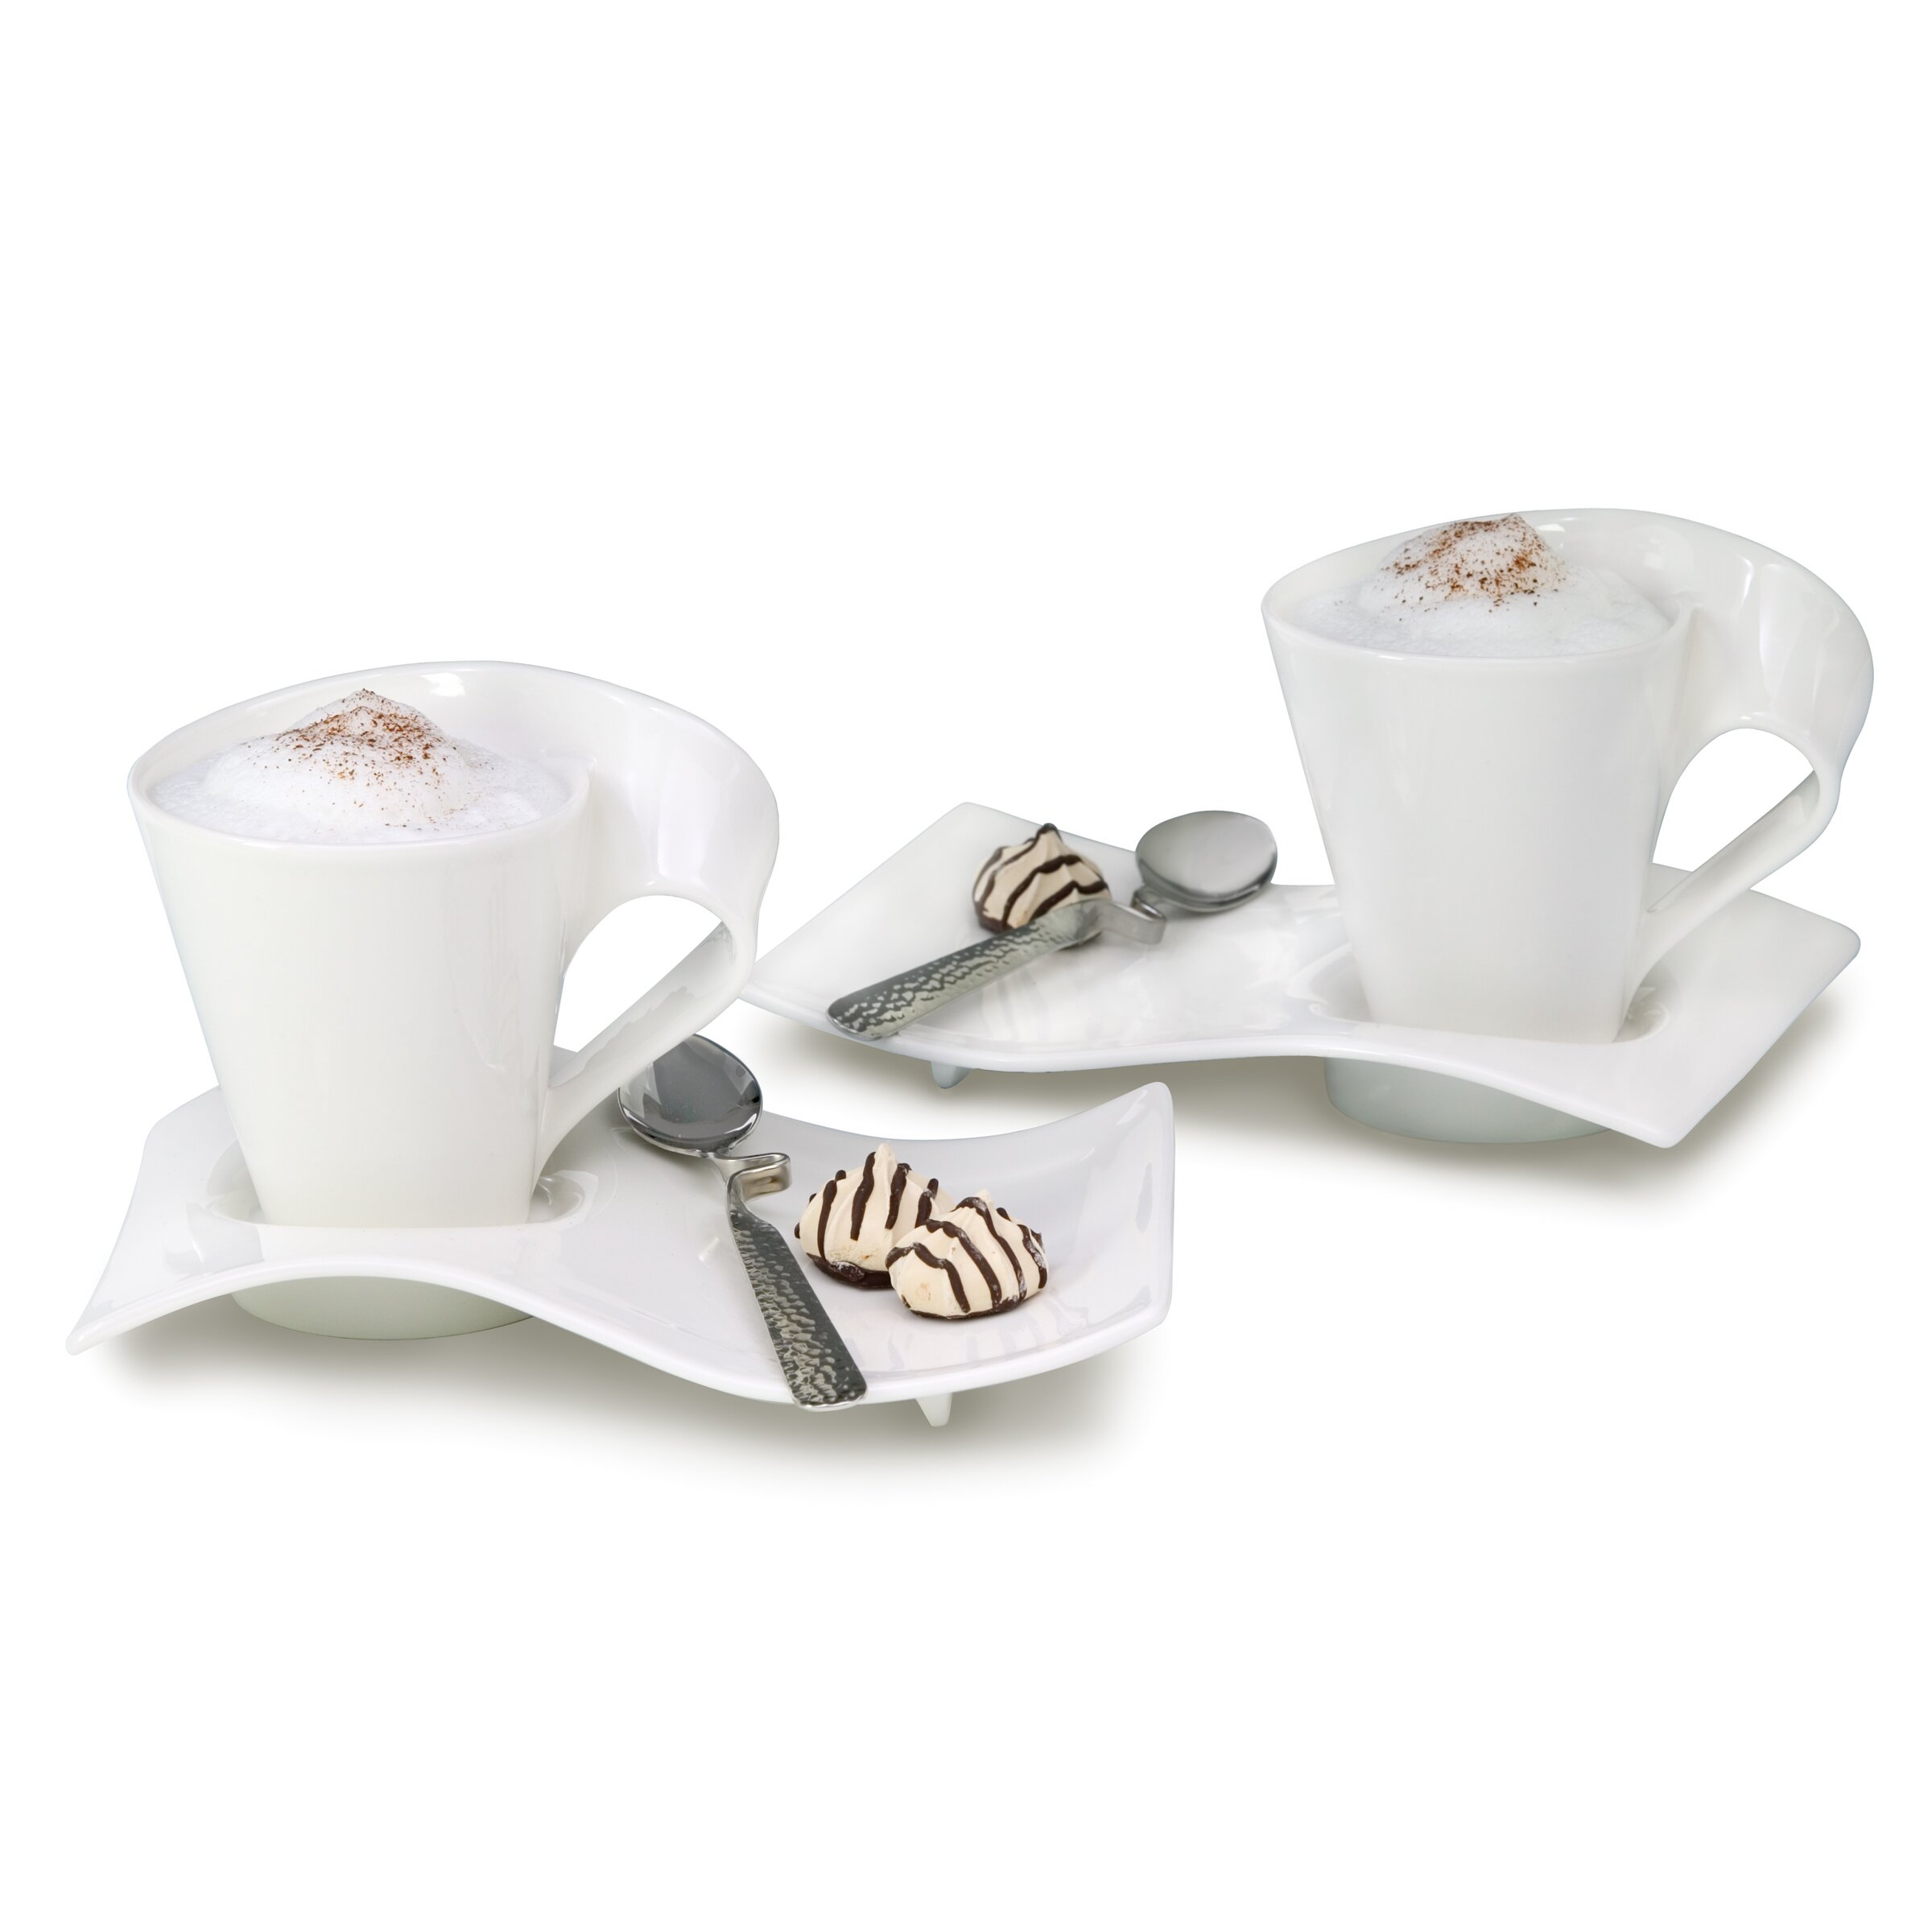 Villeroy and boch new wave set - Villeroy And Boch New Wave Set Villeroy Amp Boch New Wave Caffe 6 Piece Coffee